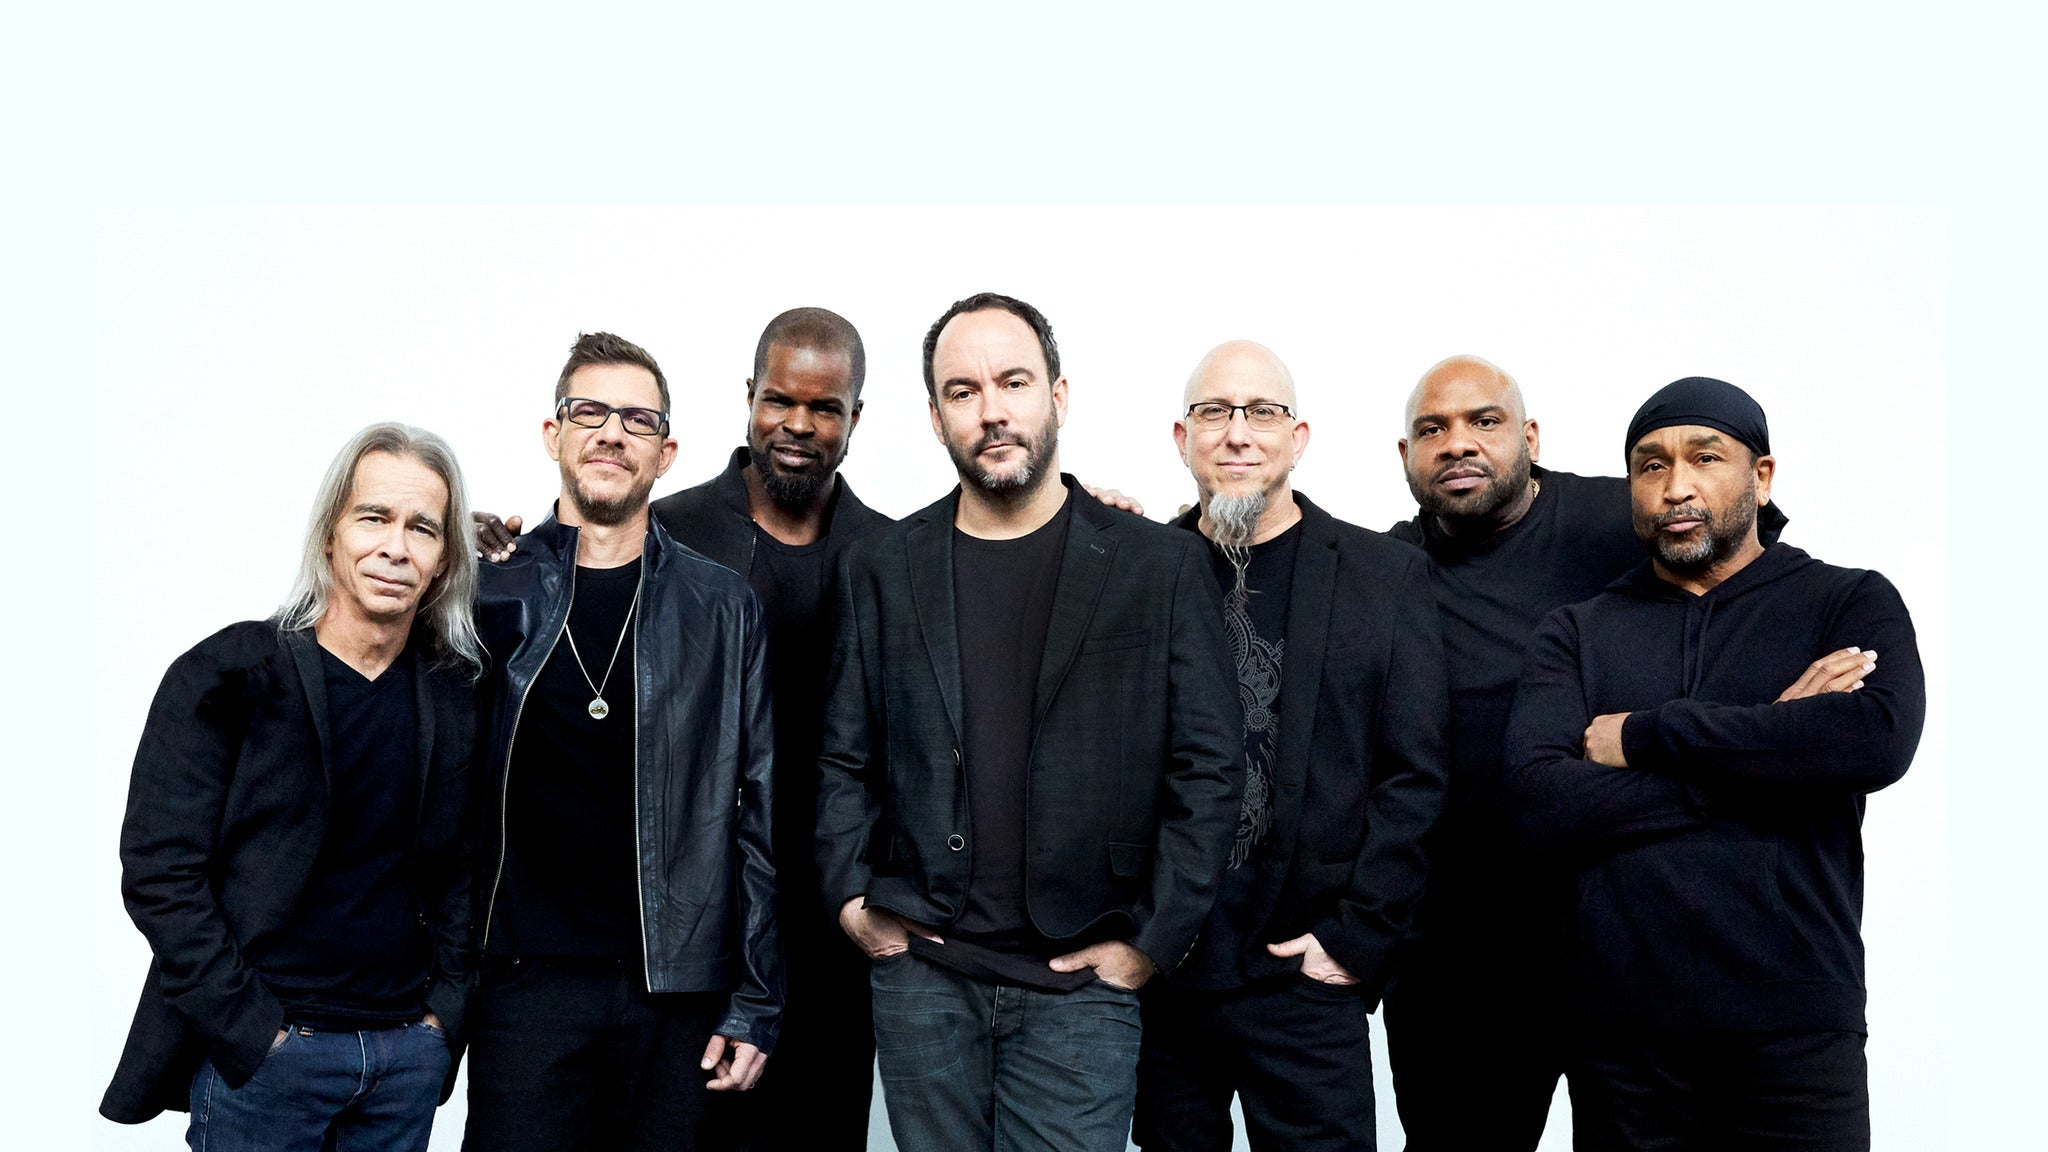 Dave Matthews Band at Ameris Bank Amphitheatre